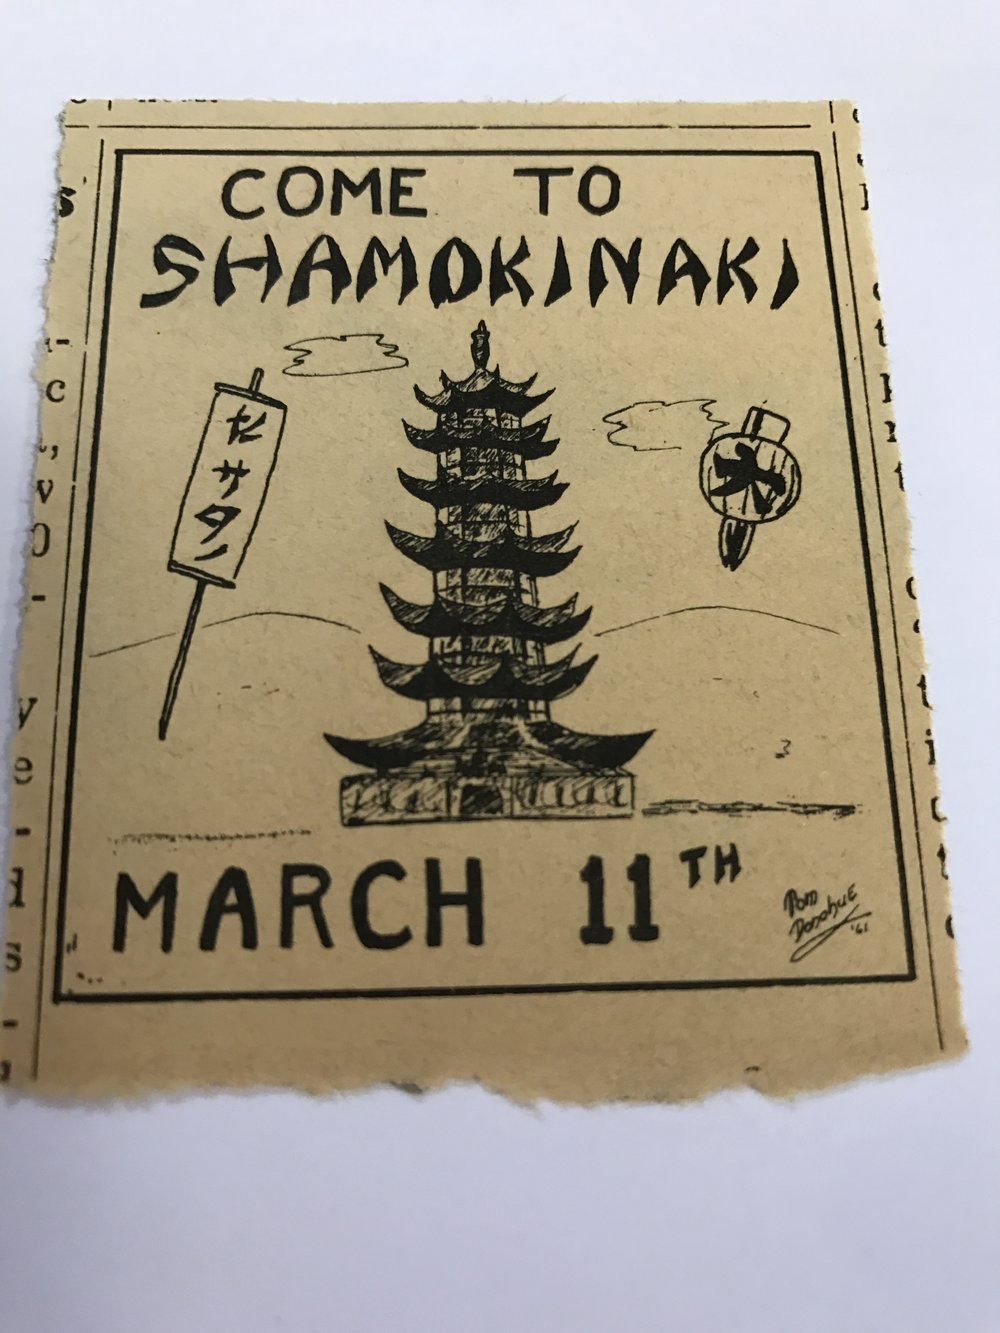 A poster from the annual Shamokinaki dance to raise funds for the Japanese mission.